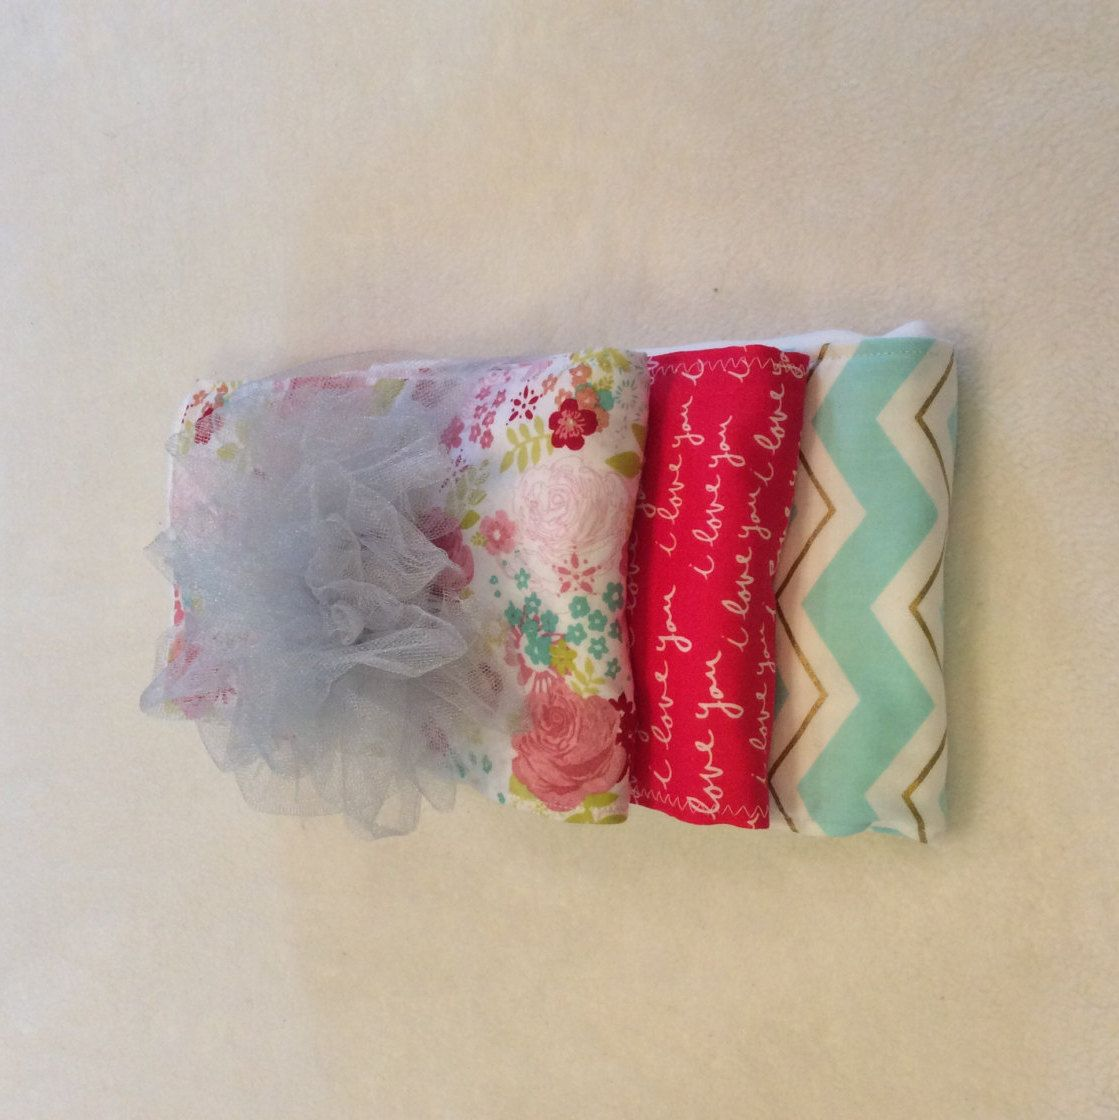 Burp cloth made out of pre-fold diapers, set of three by babiesallaround on Etsy